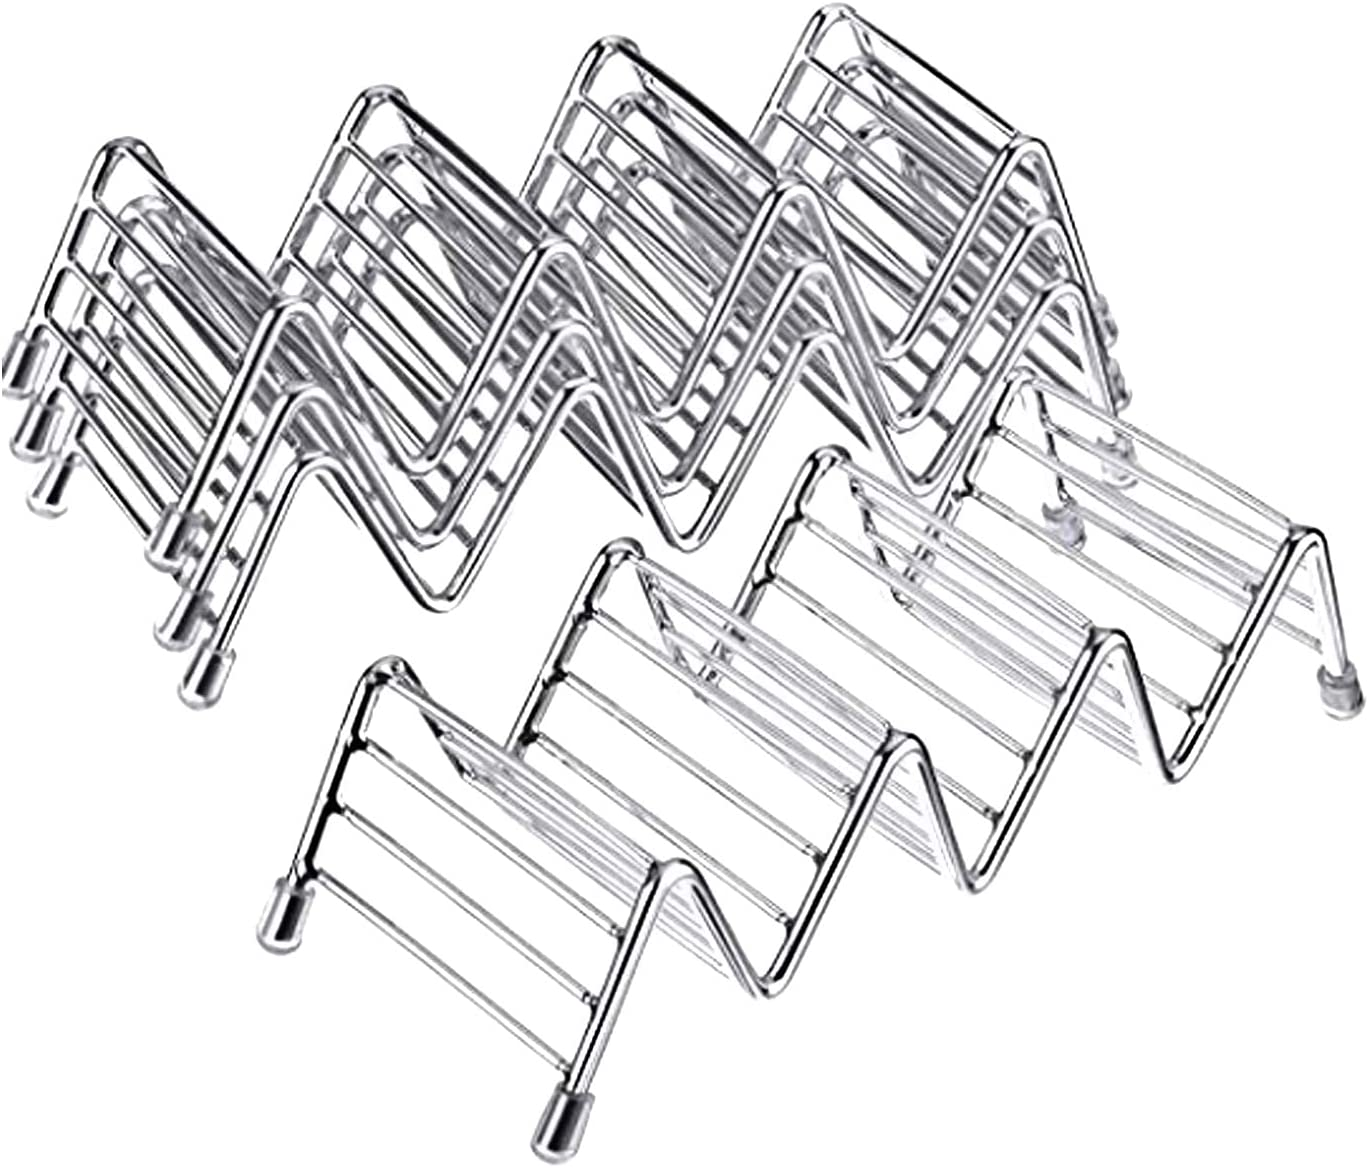 Taco Holder taco online shop Spring new work one after another holder stand Steel H Good Rack Stainless